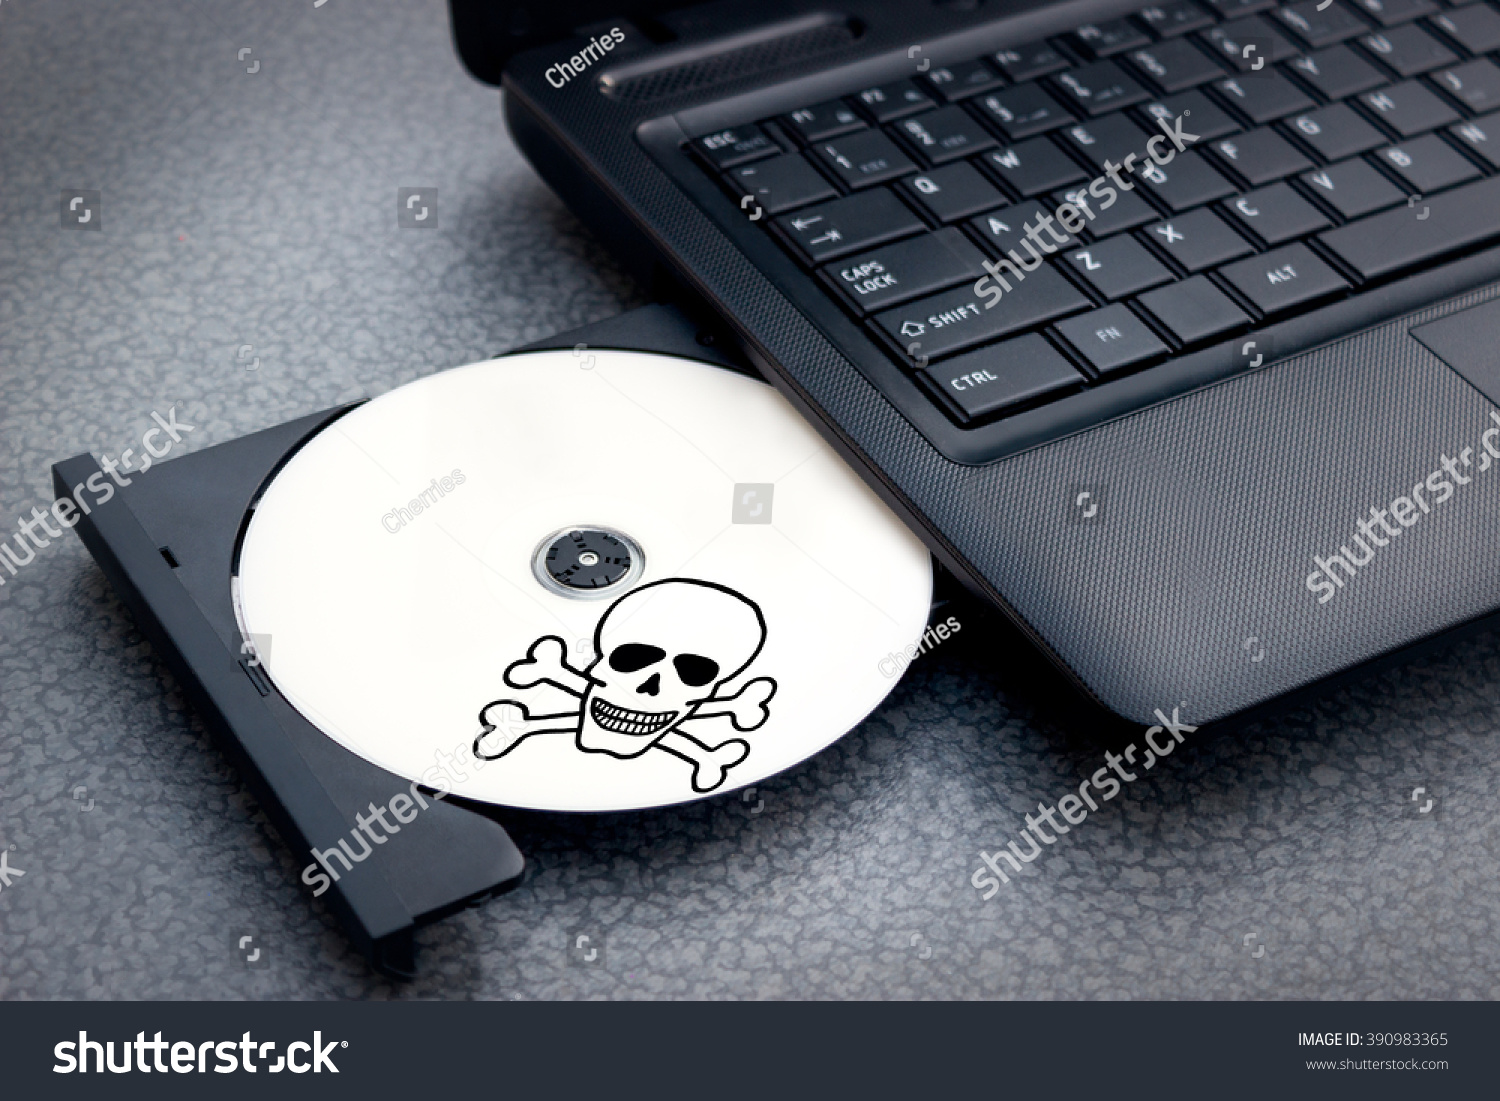 a look at the computer crimes hacking phreaking and software piracy Computer crimes come in a variety of names and can include hate crimes, telemarketing and internet fraud, identity theft and credit card account theft these are considered to be cyber crimes when the illegal activities are committed through the use of a computer and the internet it is very .